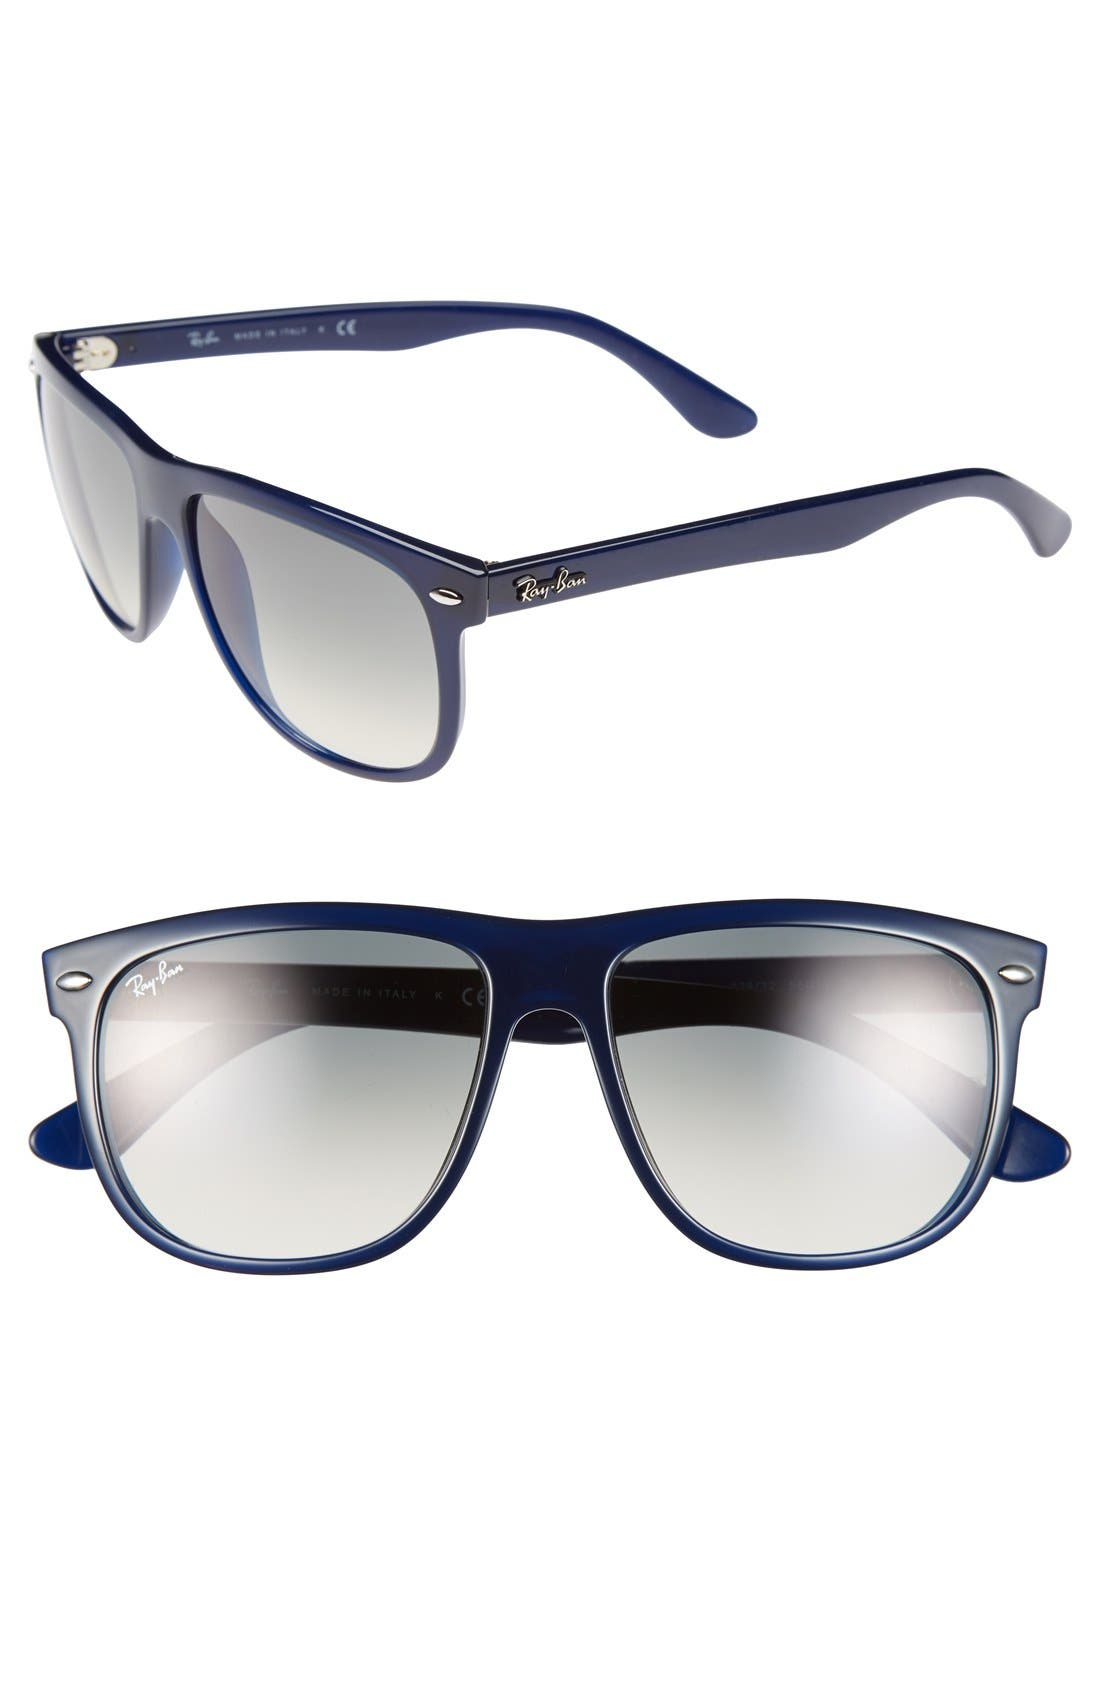 Alternate Image 1 Selected - Ray-Ban 'Boyfriend Flat Top Frame' 56mm Sunglasses